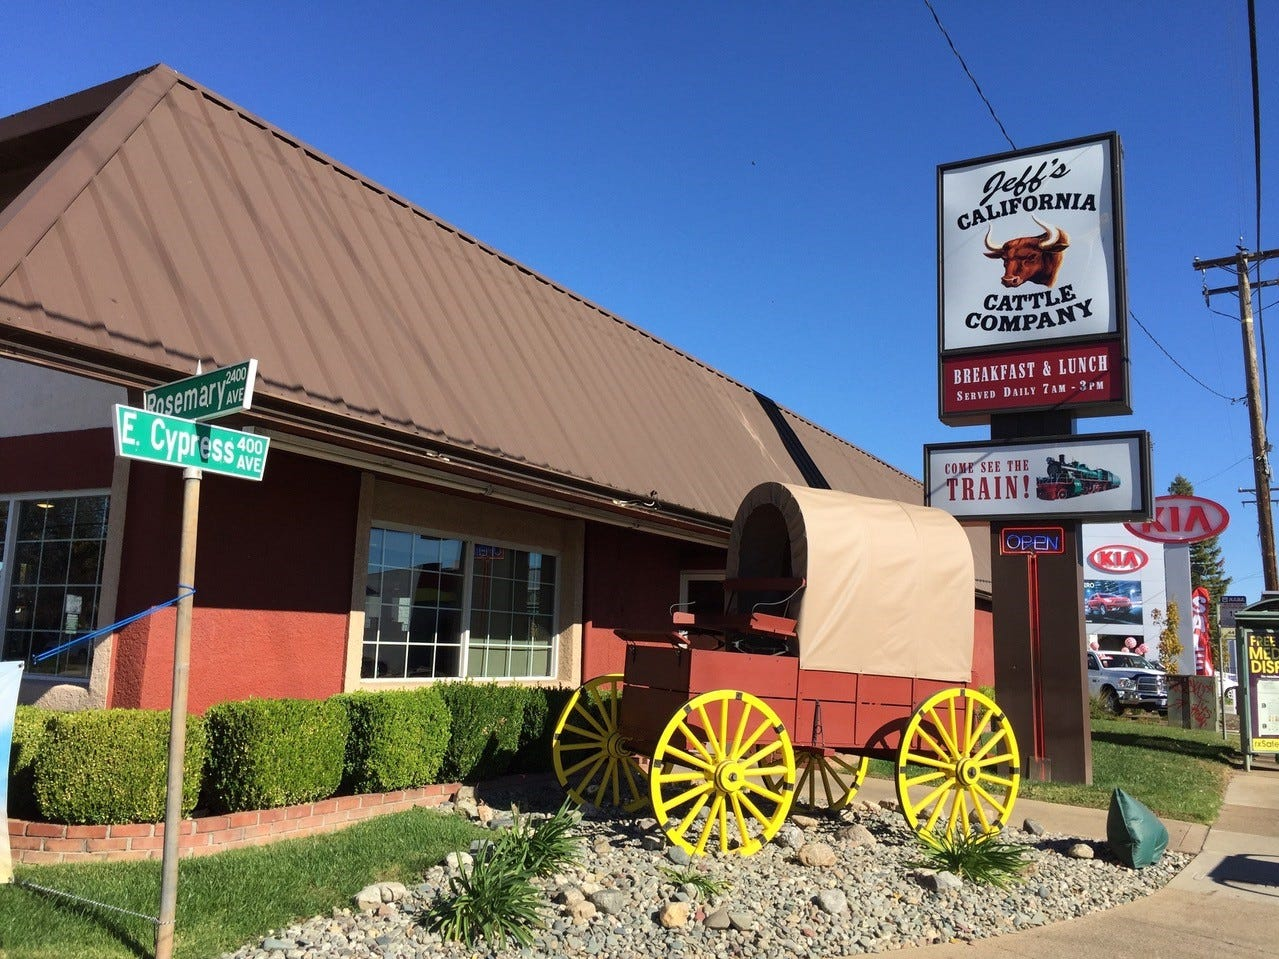 Jeff's California Cattle Company on East Cypress in Redding serves breakfast and lunch daily.